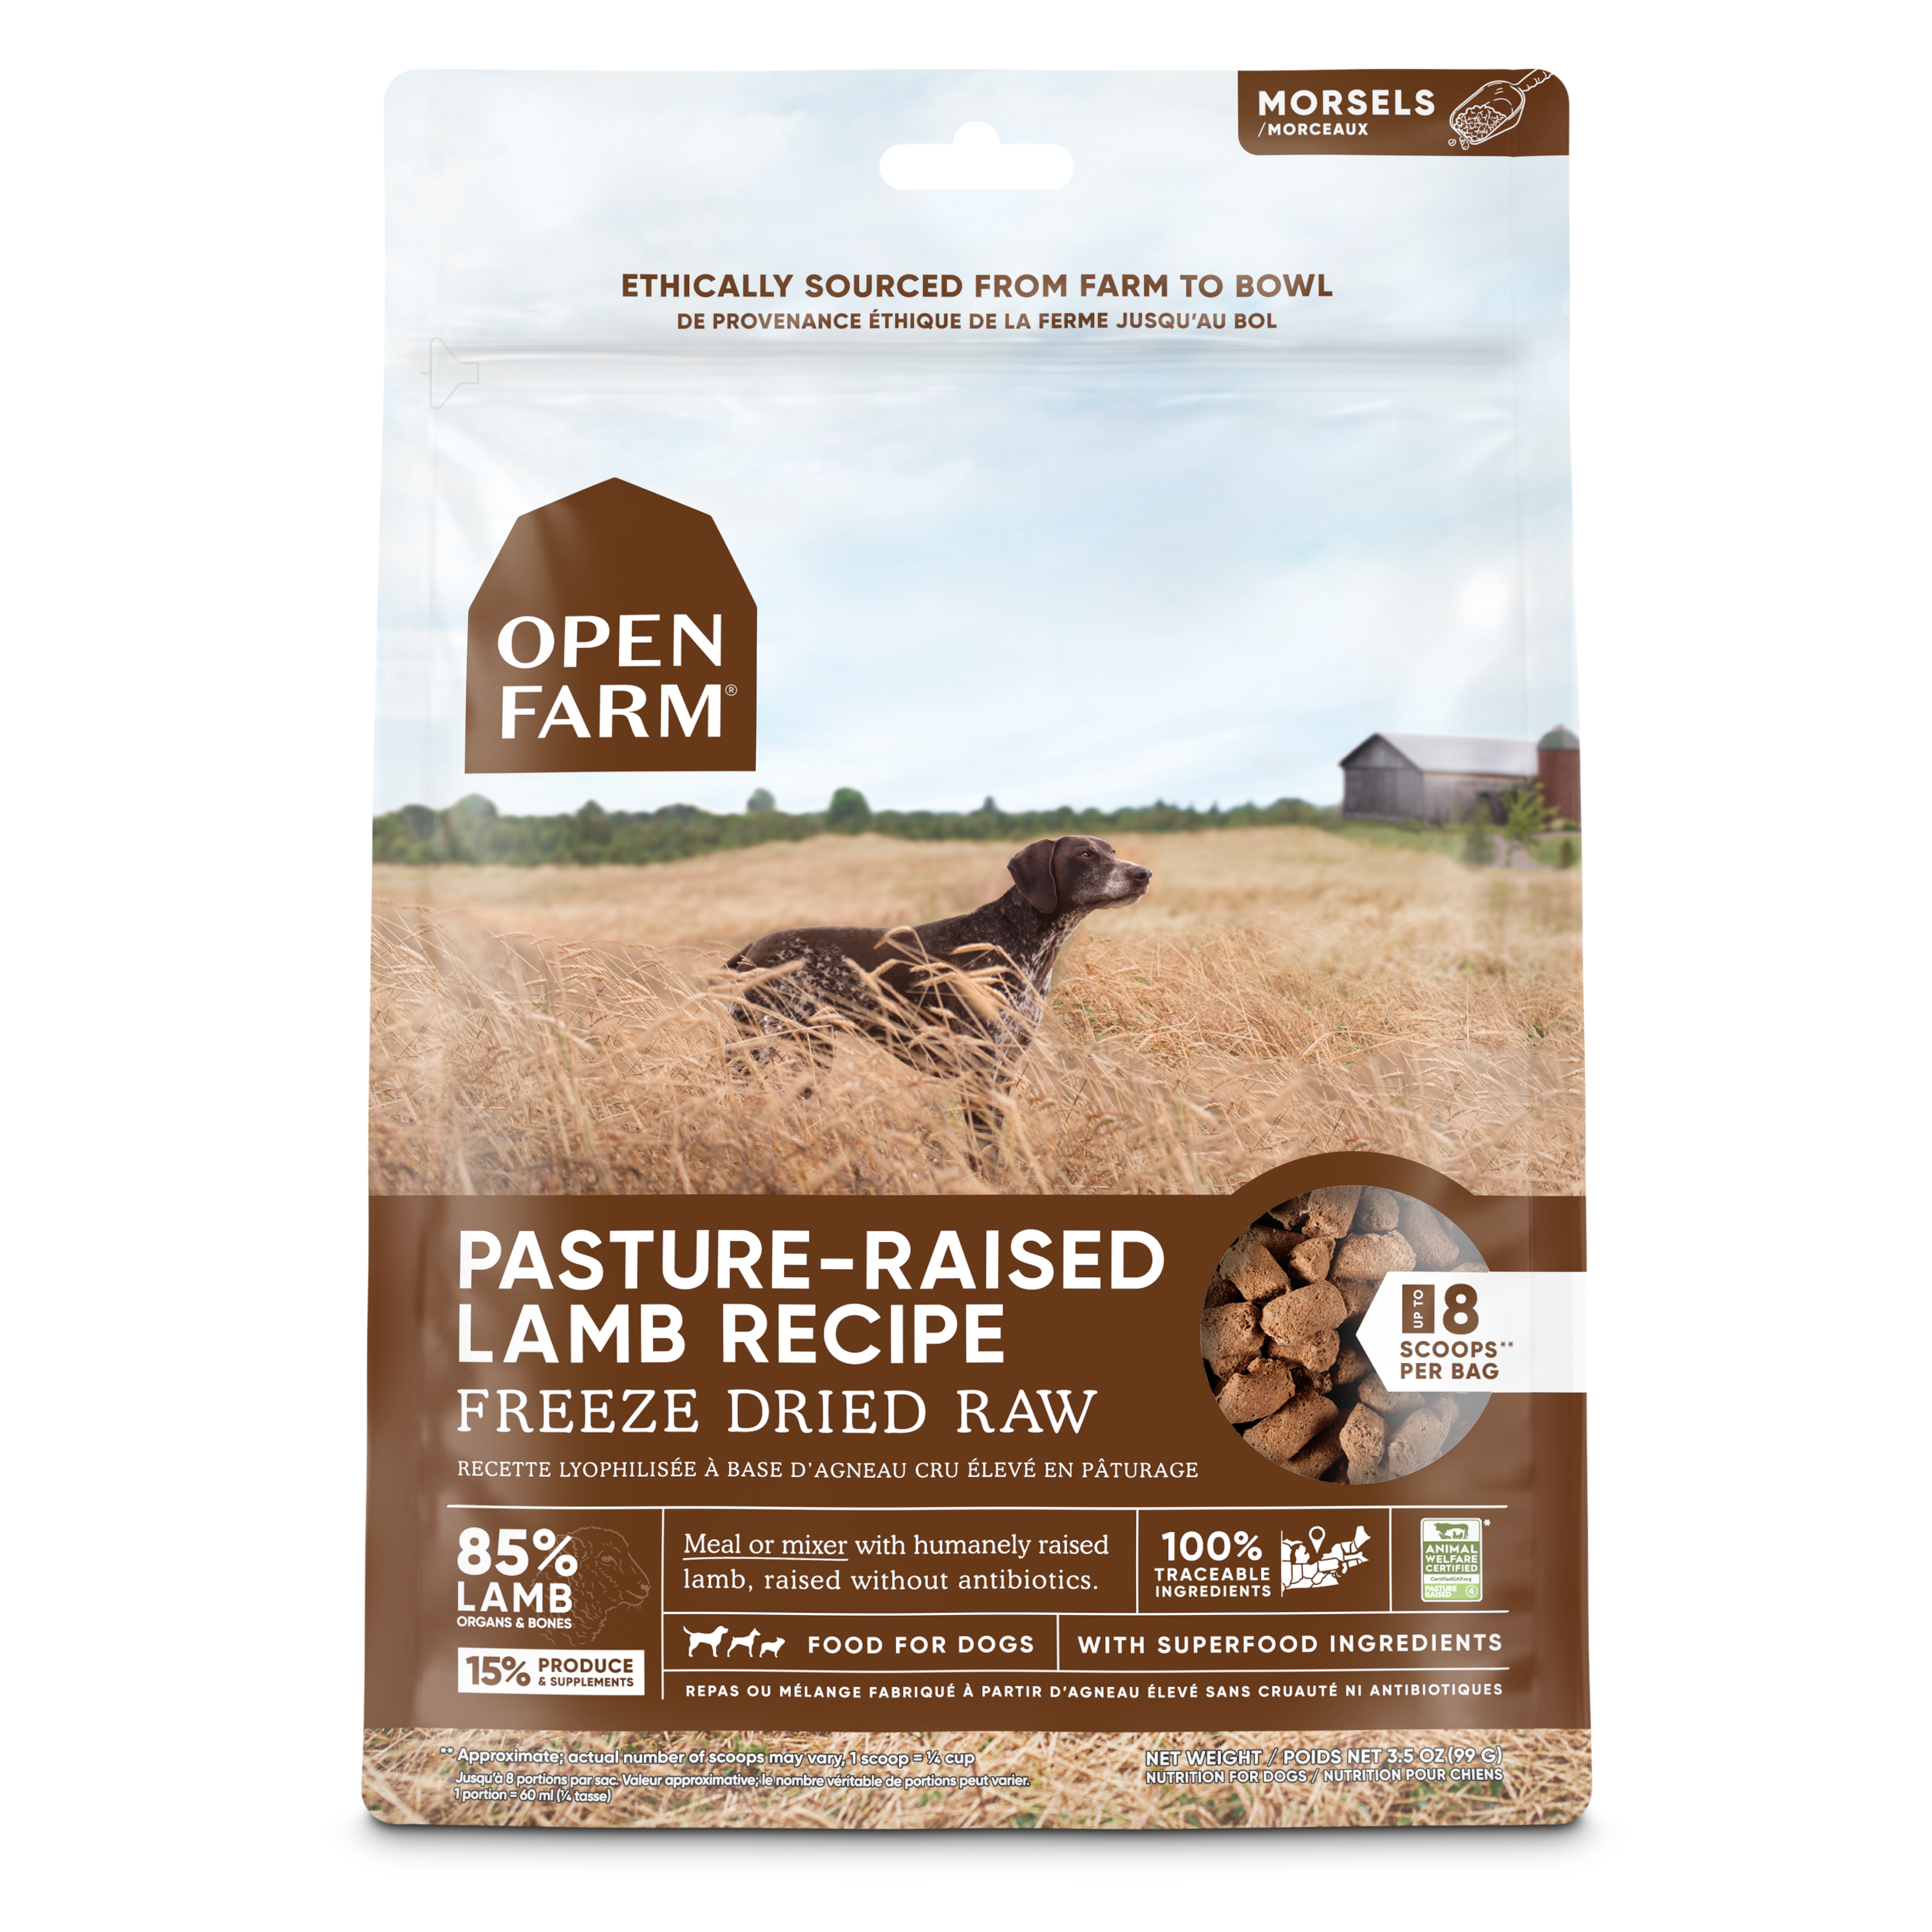 Open Farm Freeze Dried Lamb Morsels Image